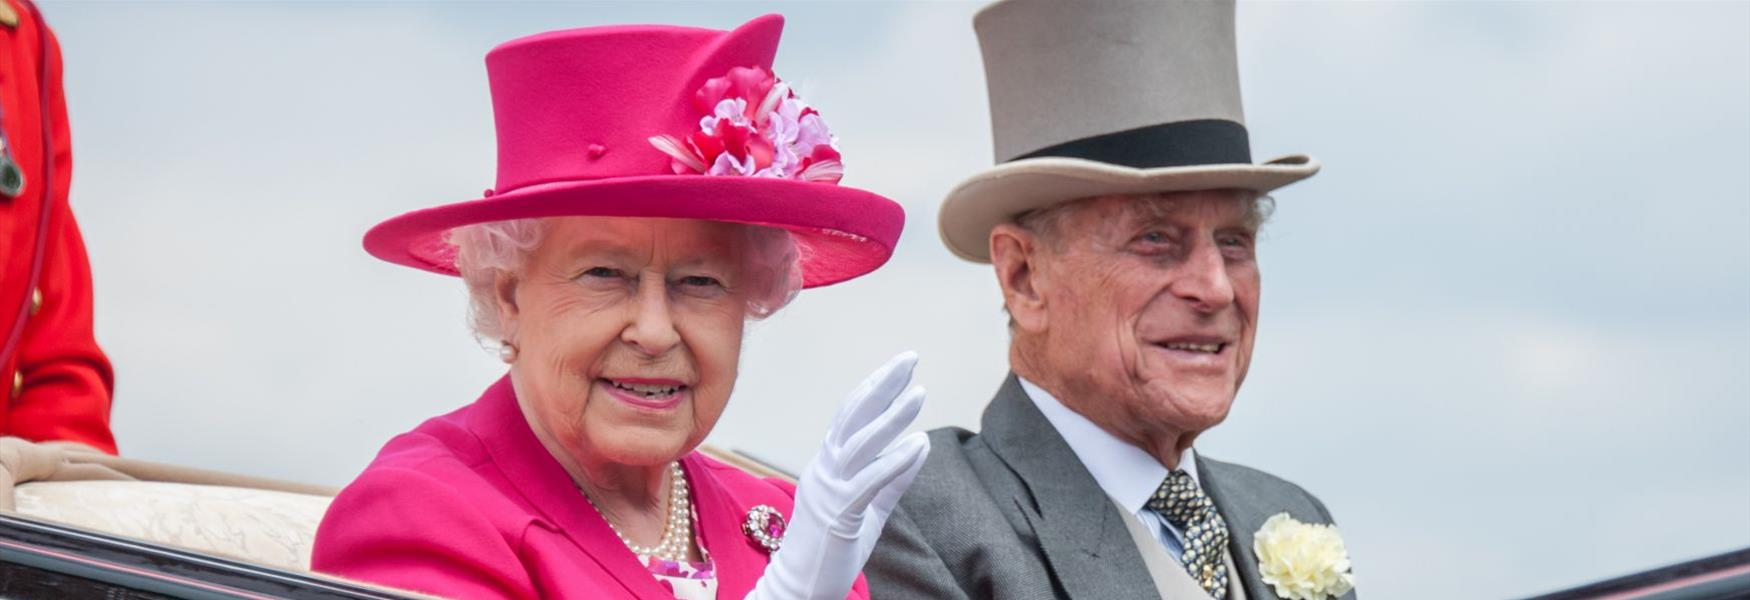 The Queen and The Duke of Edinburgh travel to Royal Ascot © Gill Aspel 2015